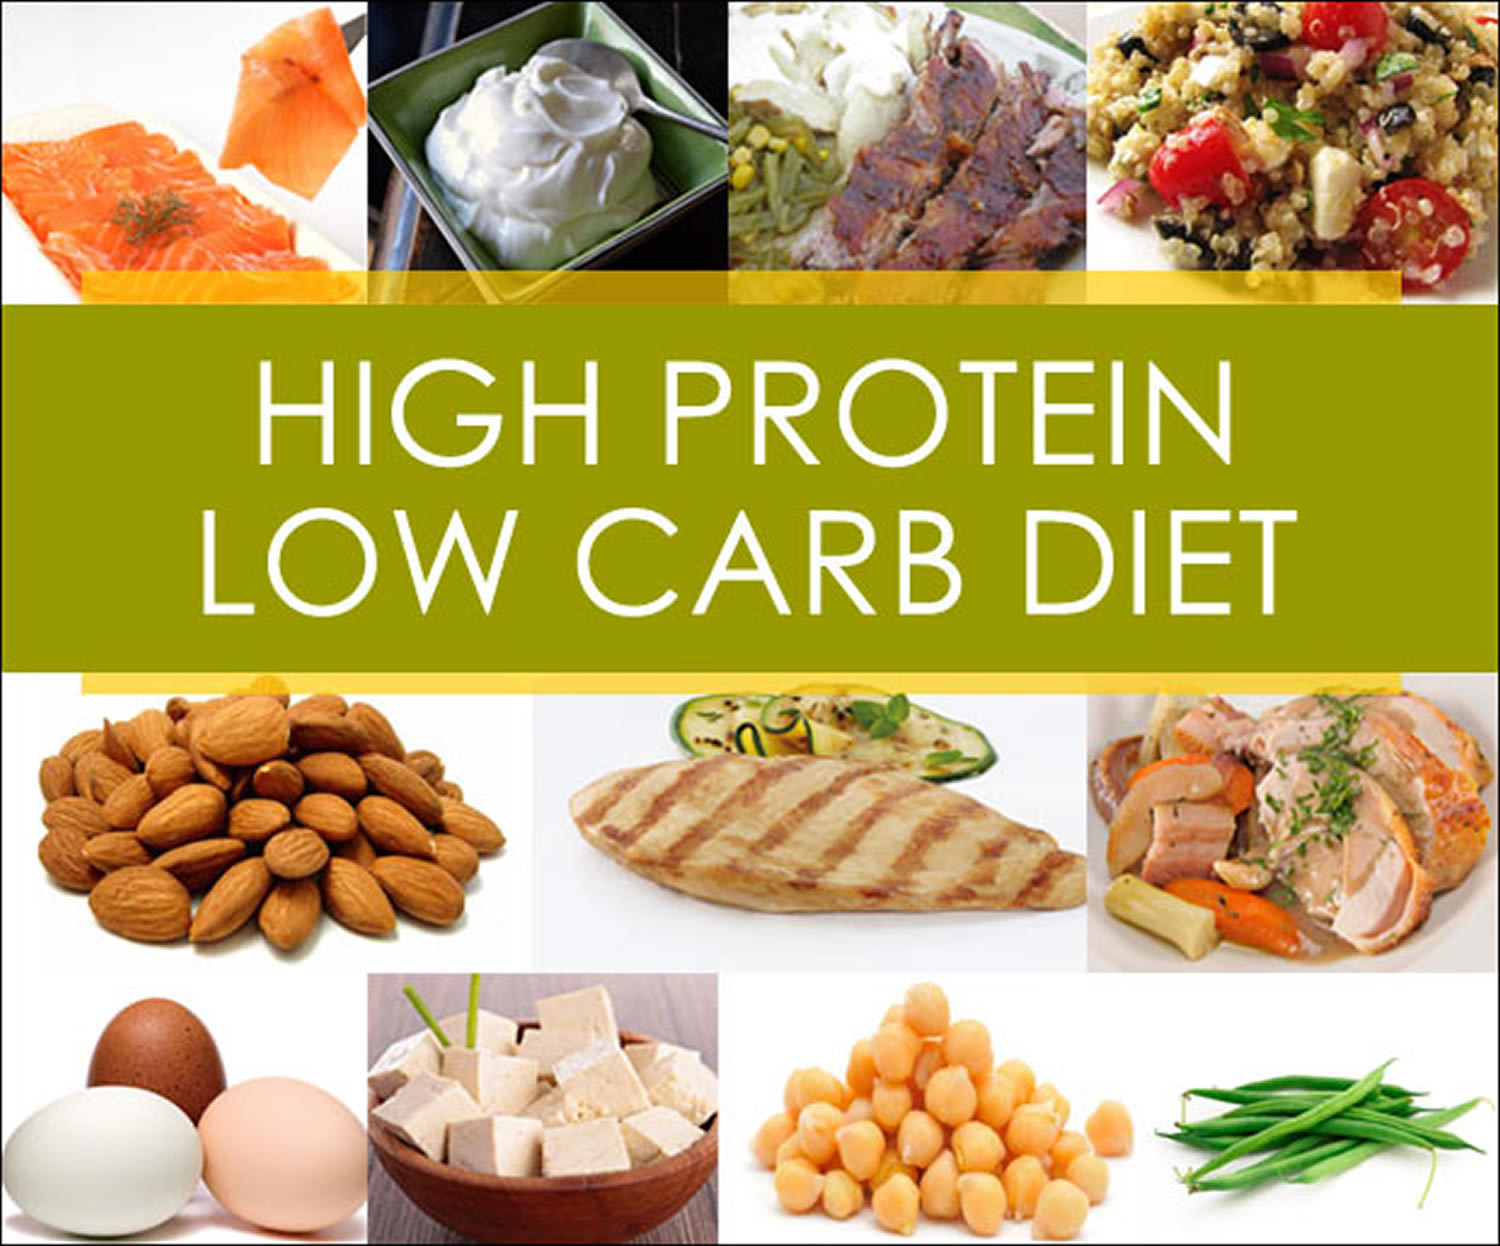 High Protein Low Carb Low Fat Diet  High Protein Low Carb Diet for Weight Loss What Are The